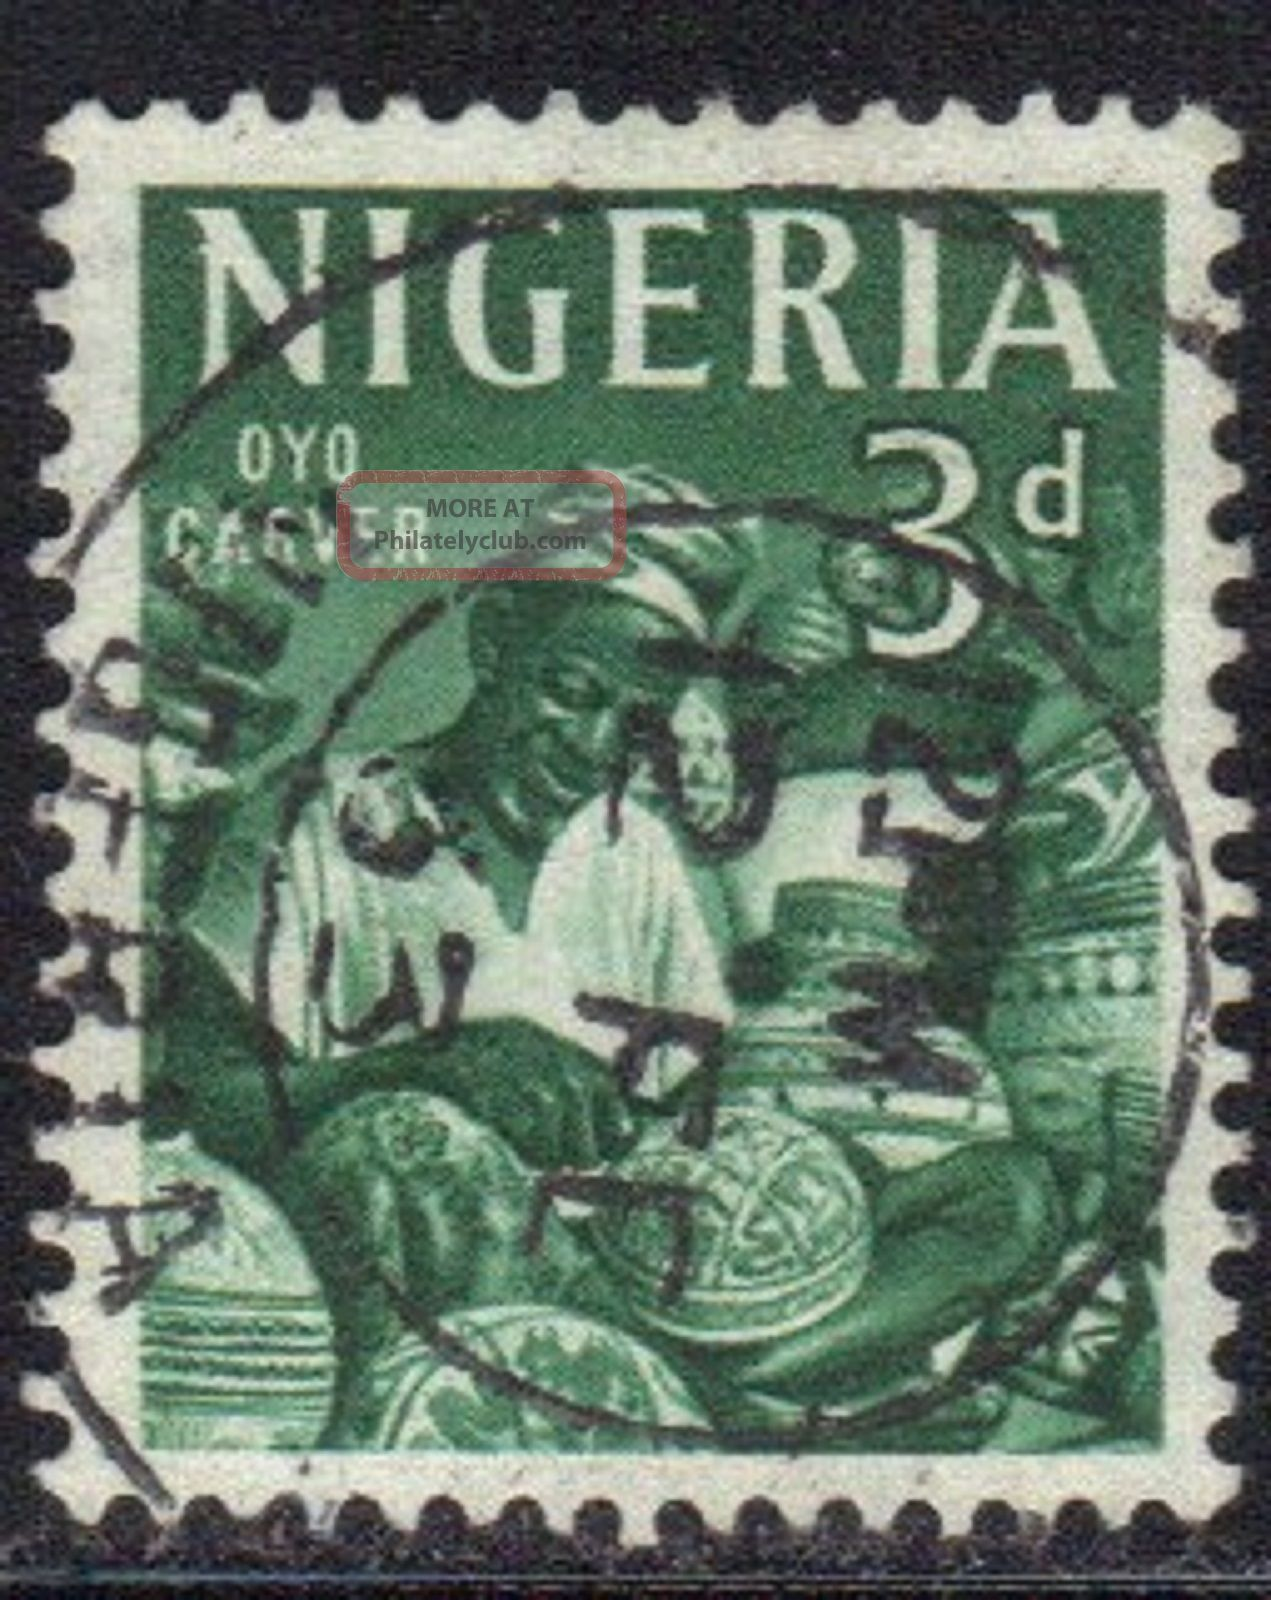 Nigeria Stamp Scott 105 Stamp See Photo Africa photo